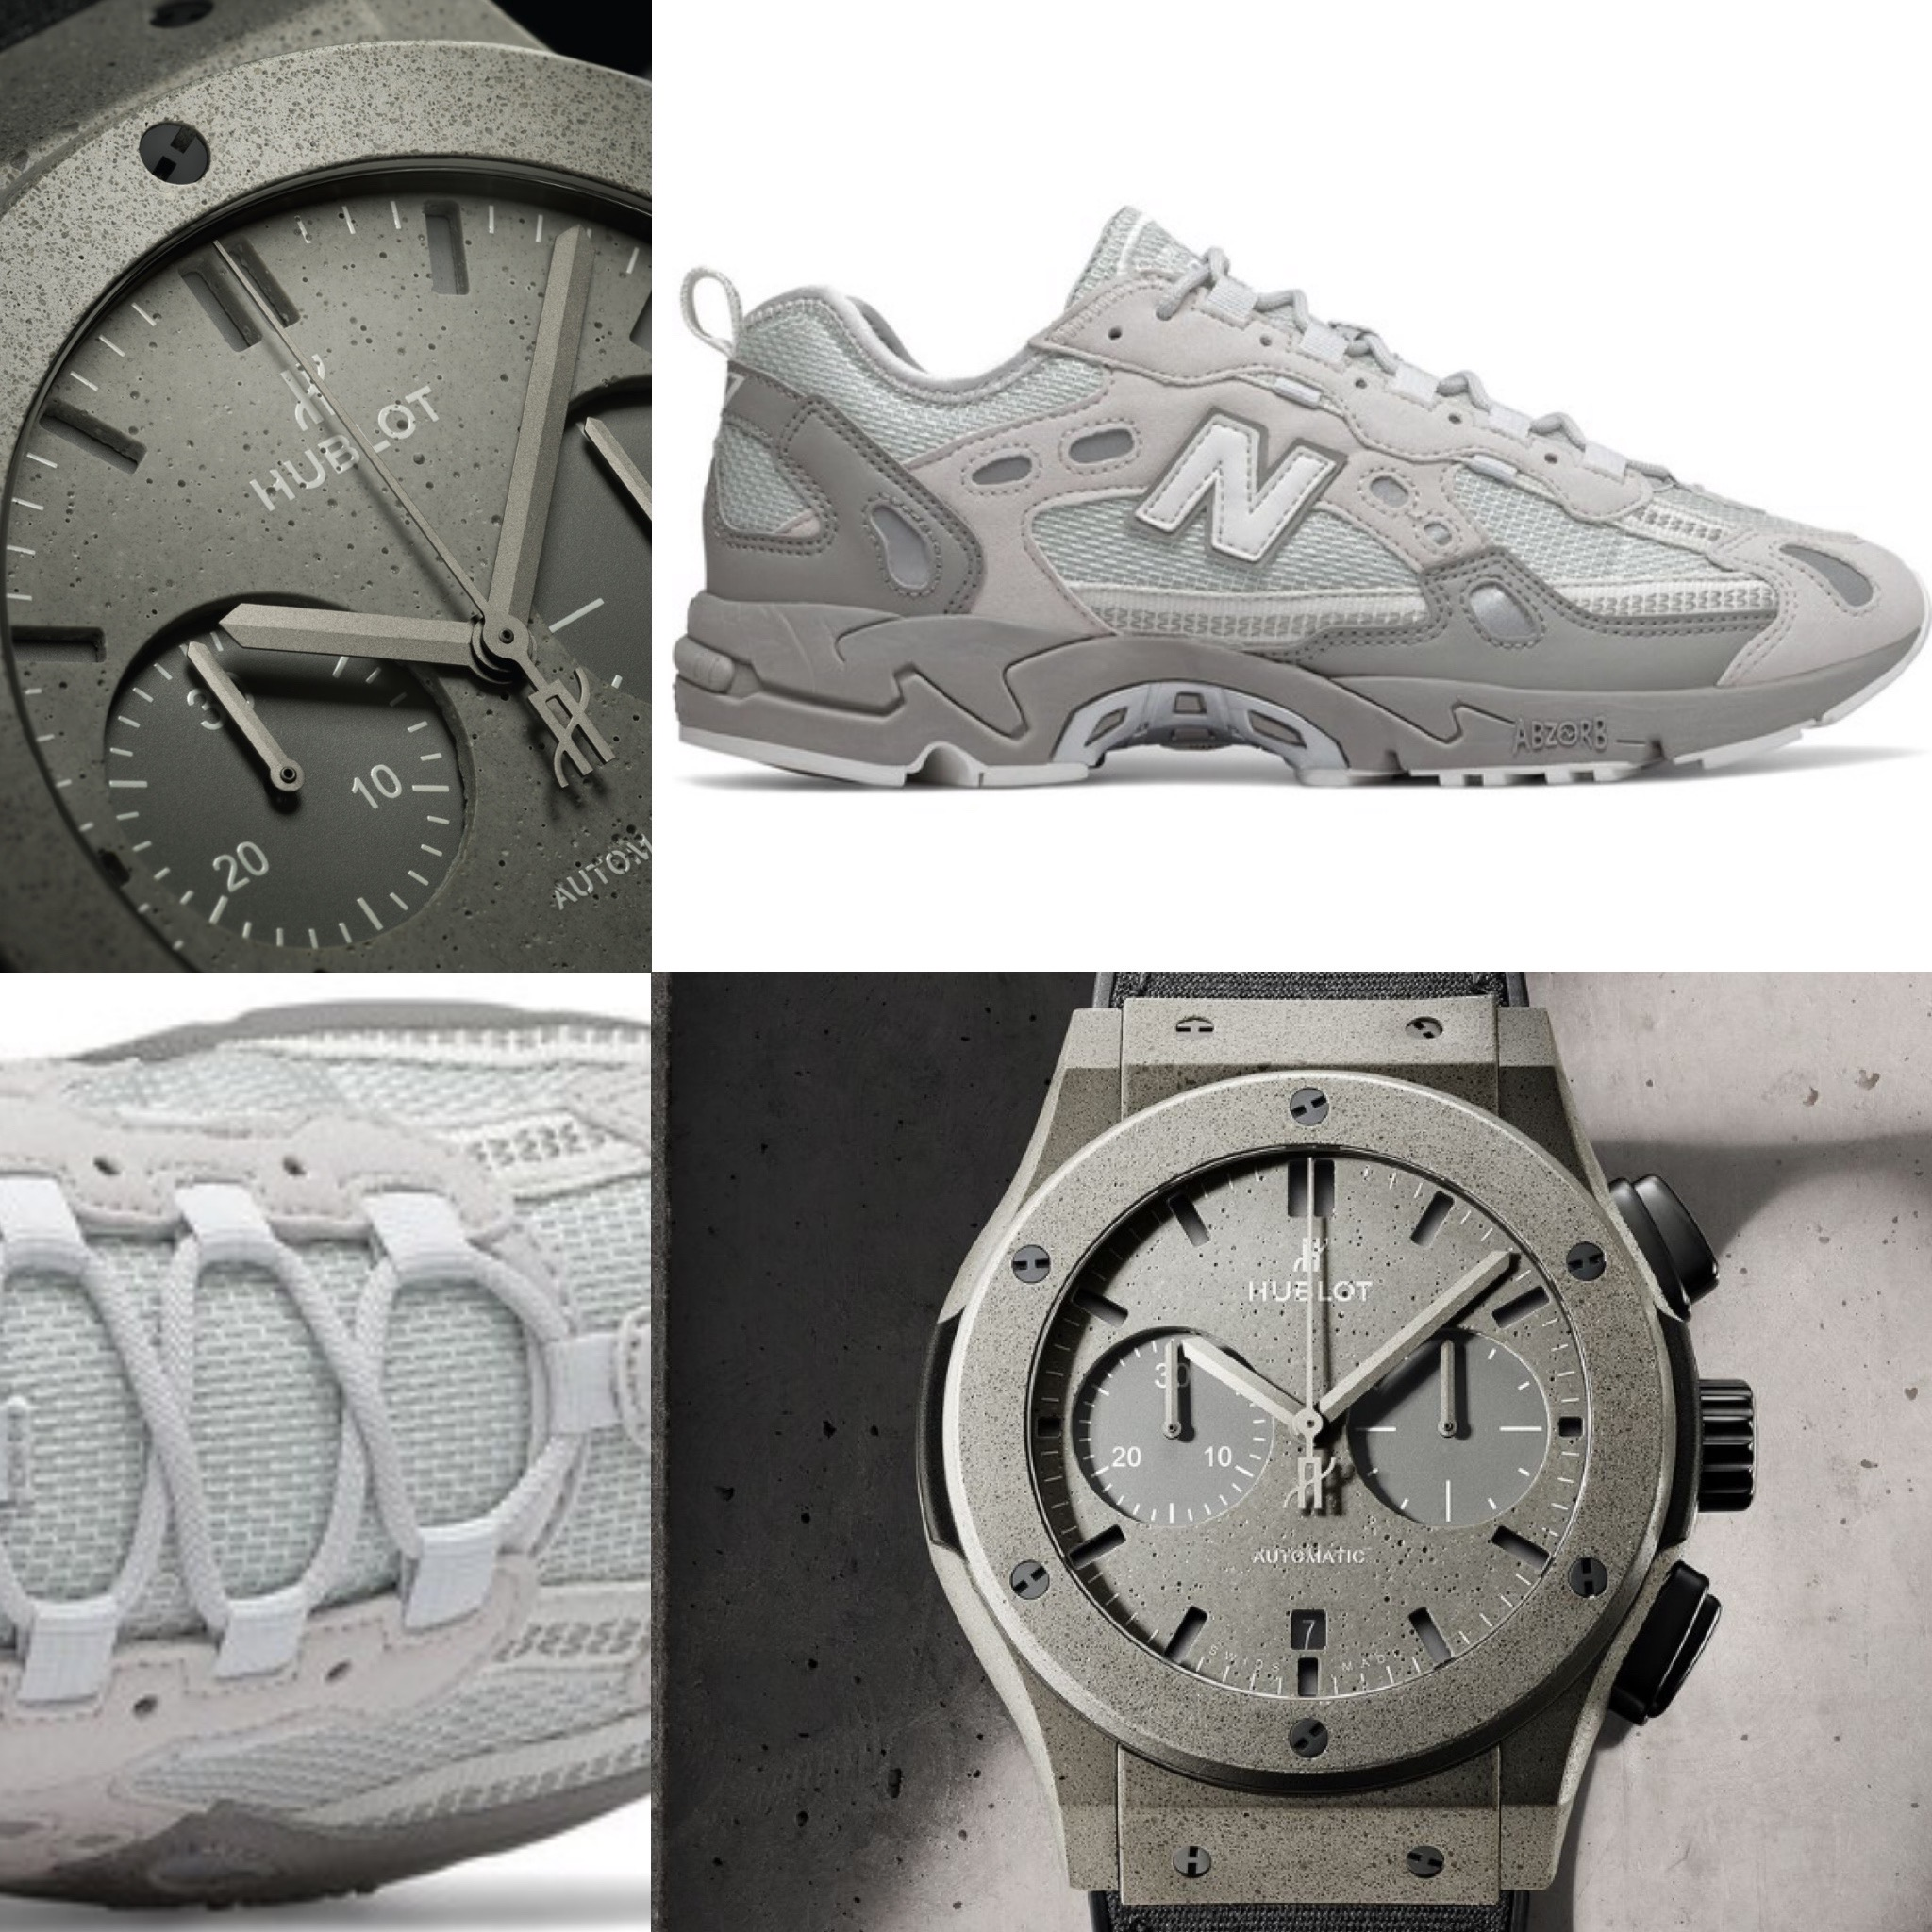 #Kicktock: Hublot's street-tough dial made from concrete meets its match with New Balance